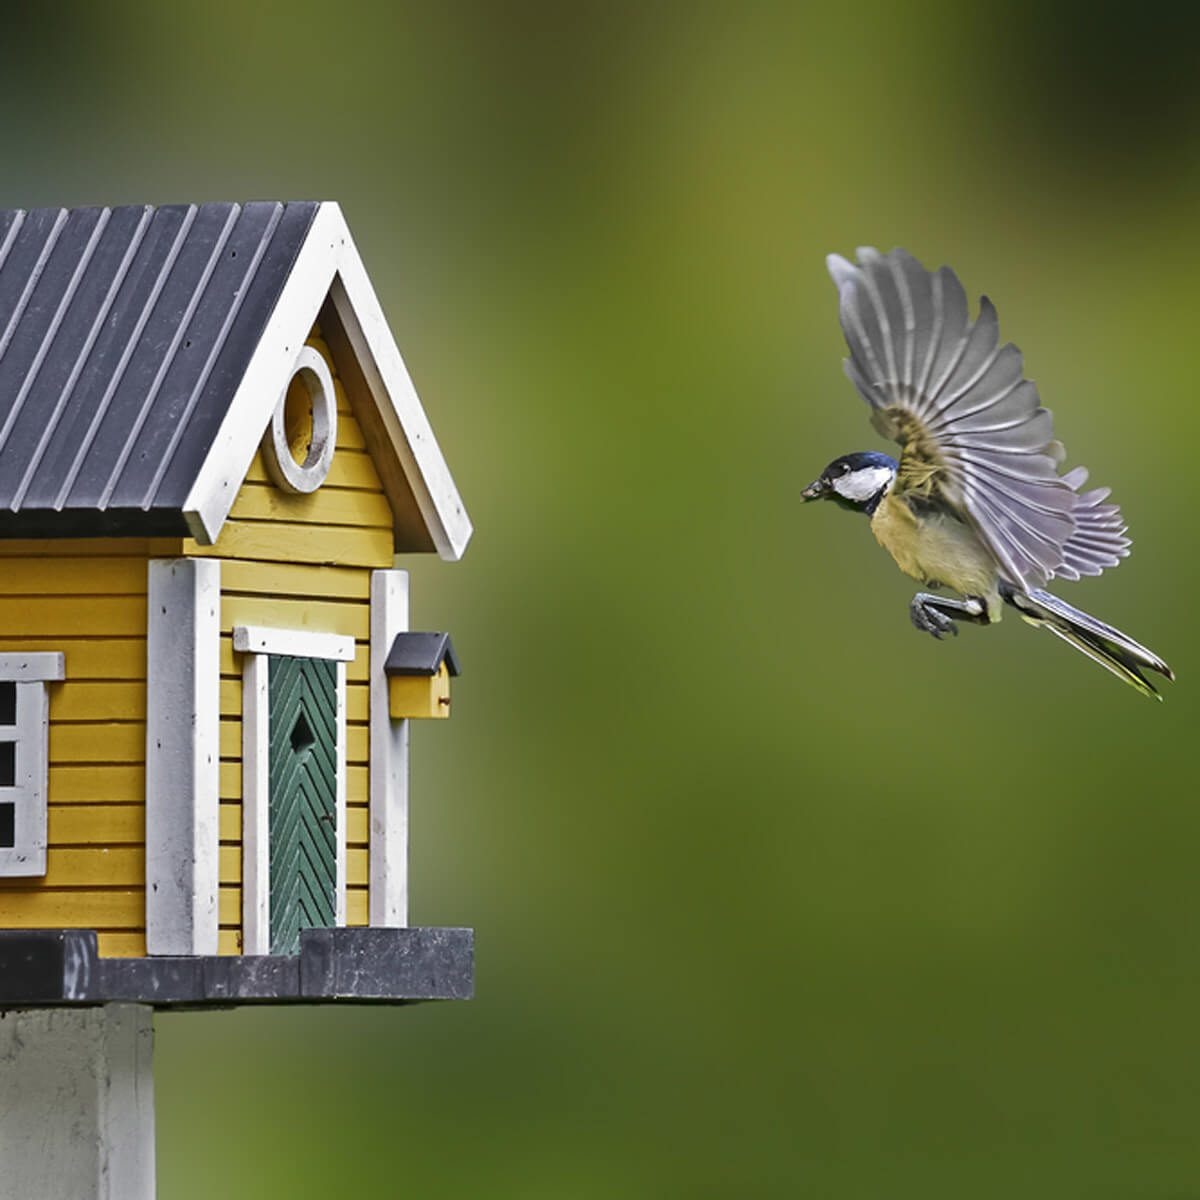 birdhouse flying bird